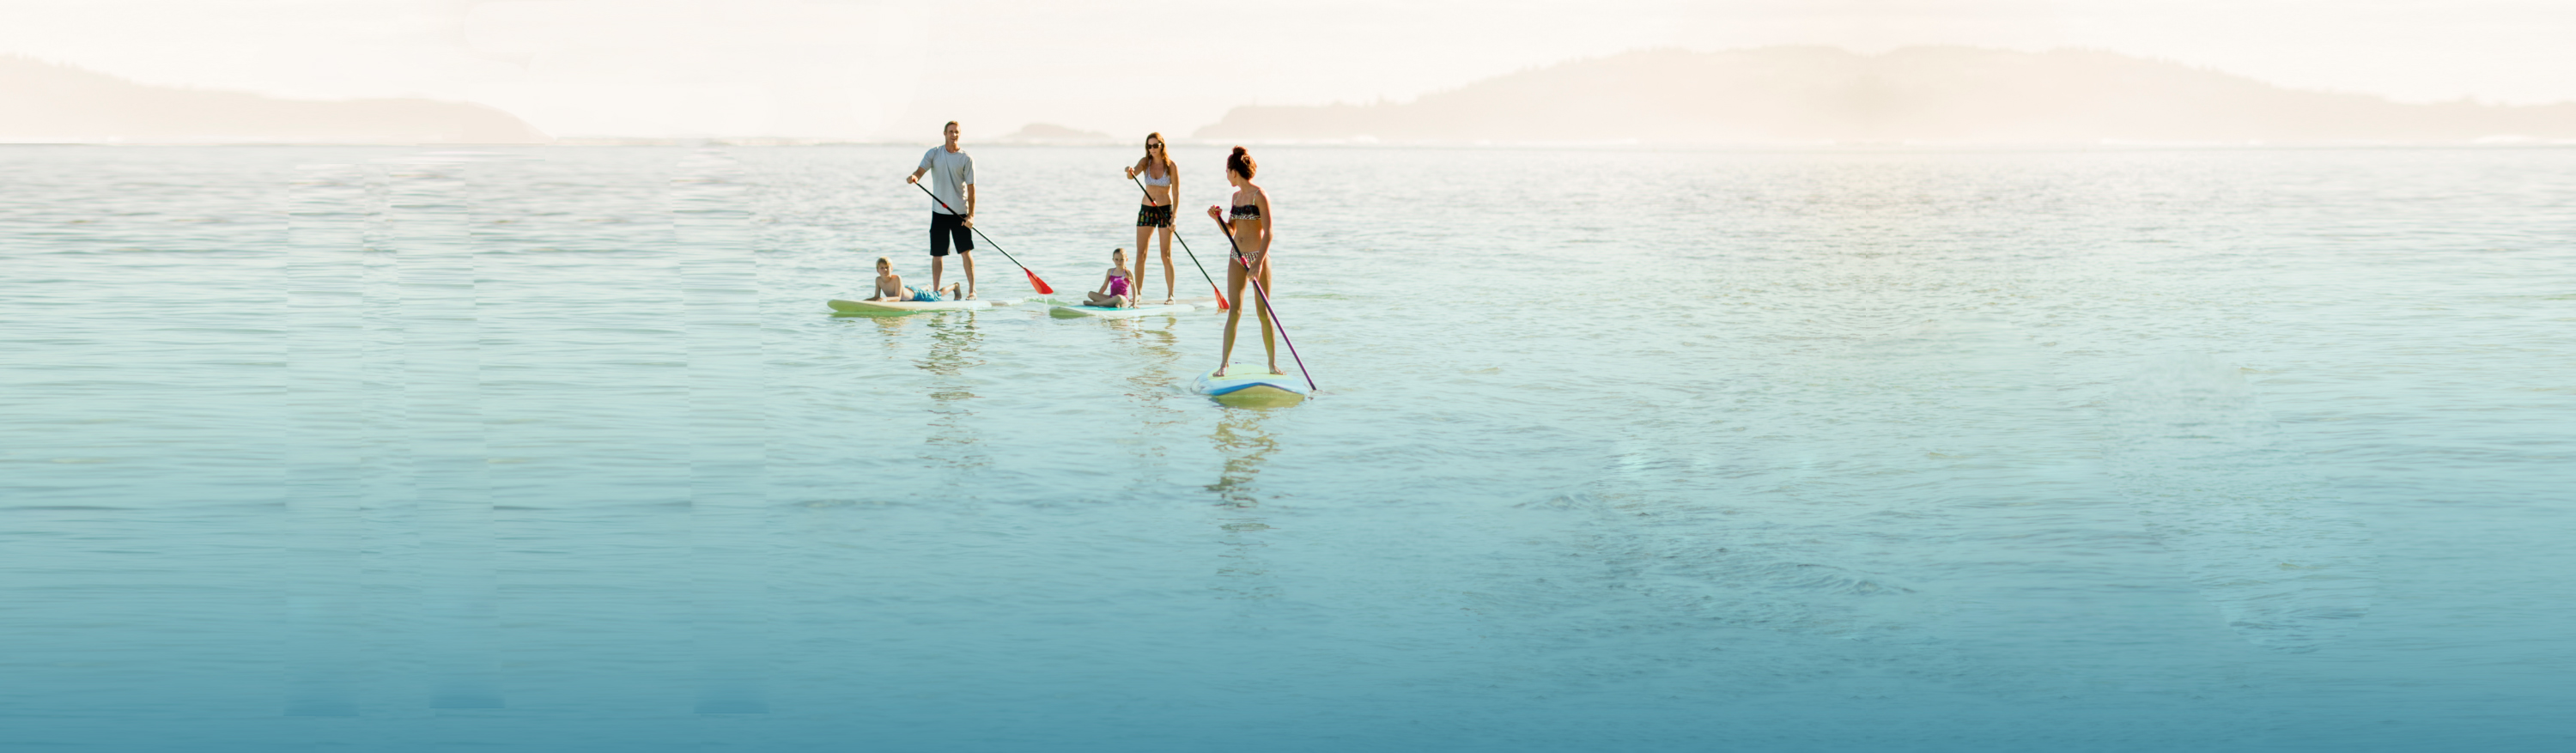 Family paddleboarding in the ocean